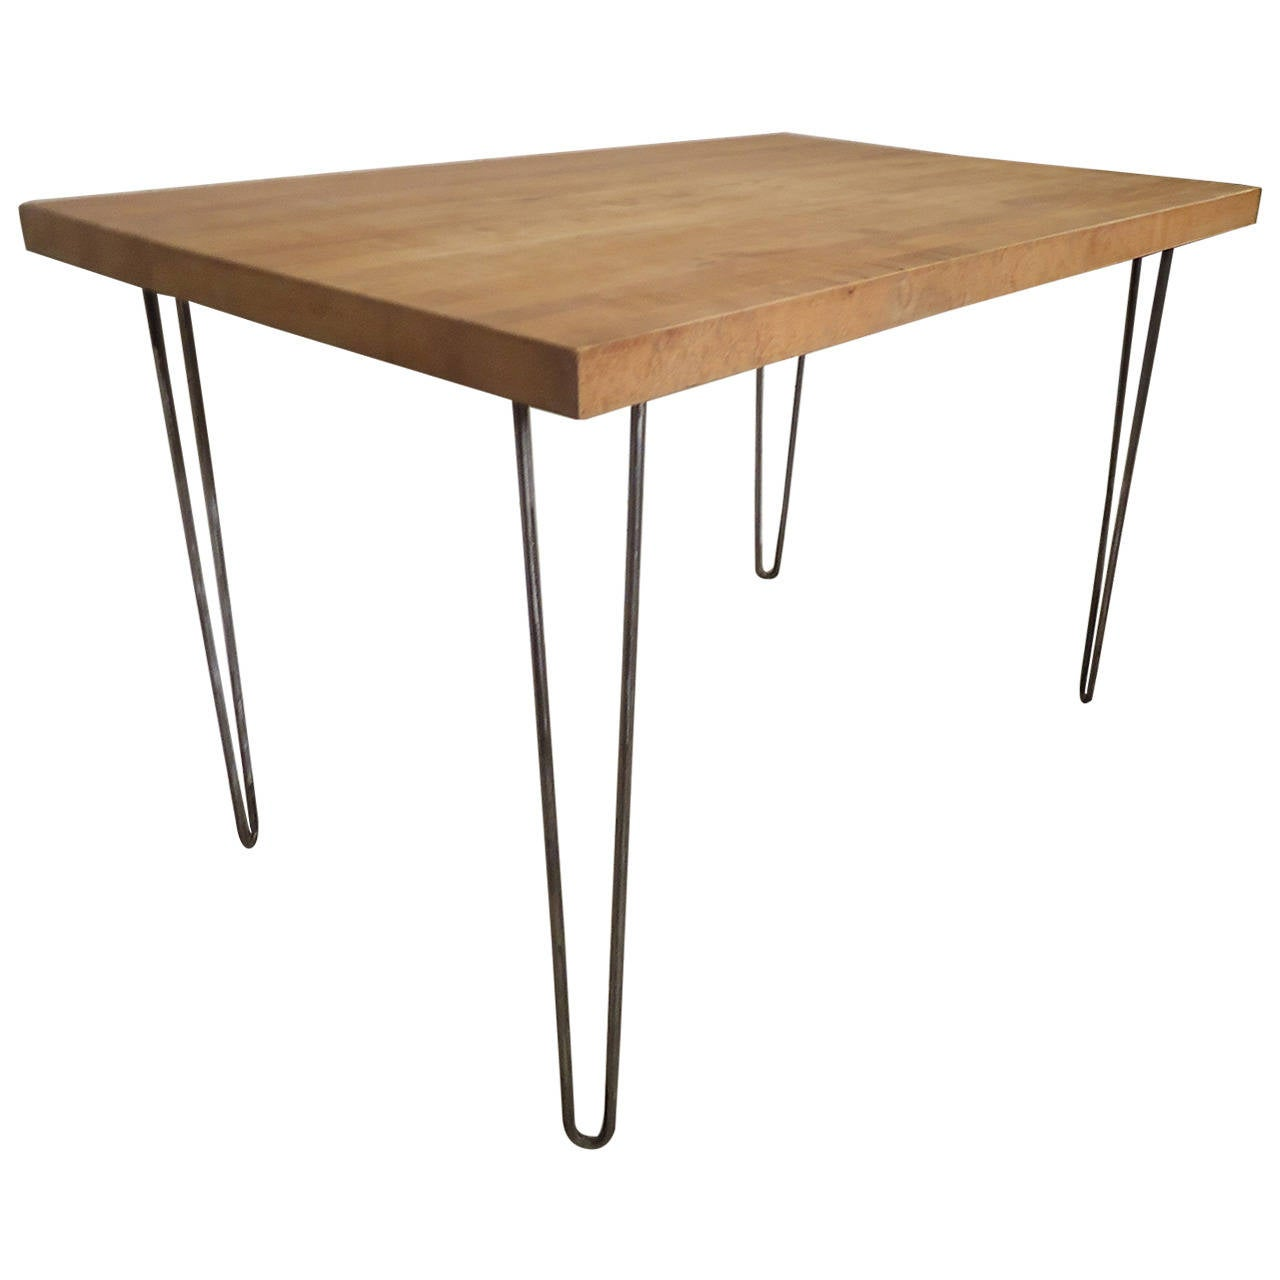 Butcher Block Table on Iron Hairpin Legs For Sale at 1stdibs : 2022542l from www.1stdibs.com size 1280 x 1280 jpeg 54kB